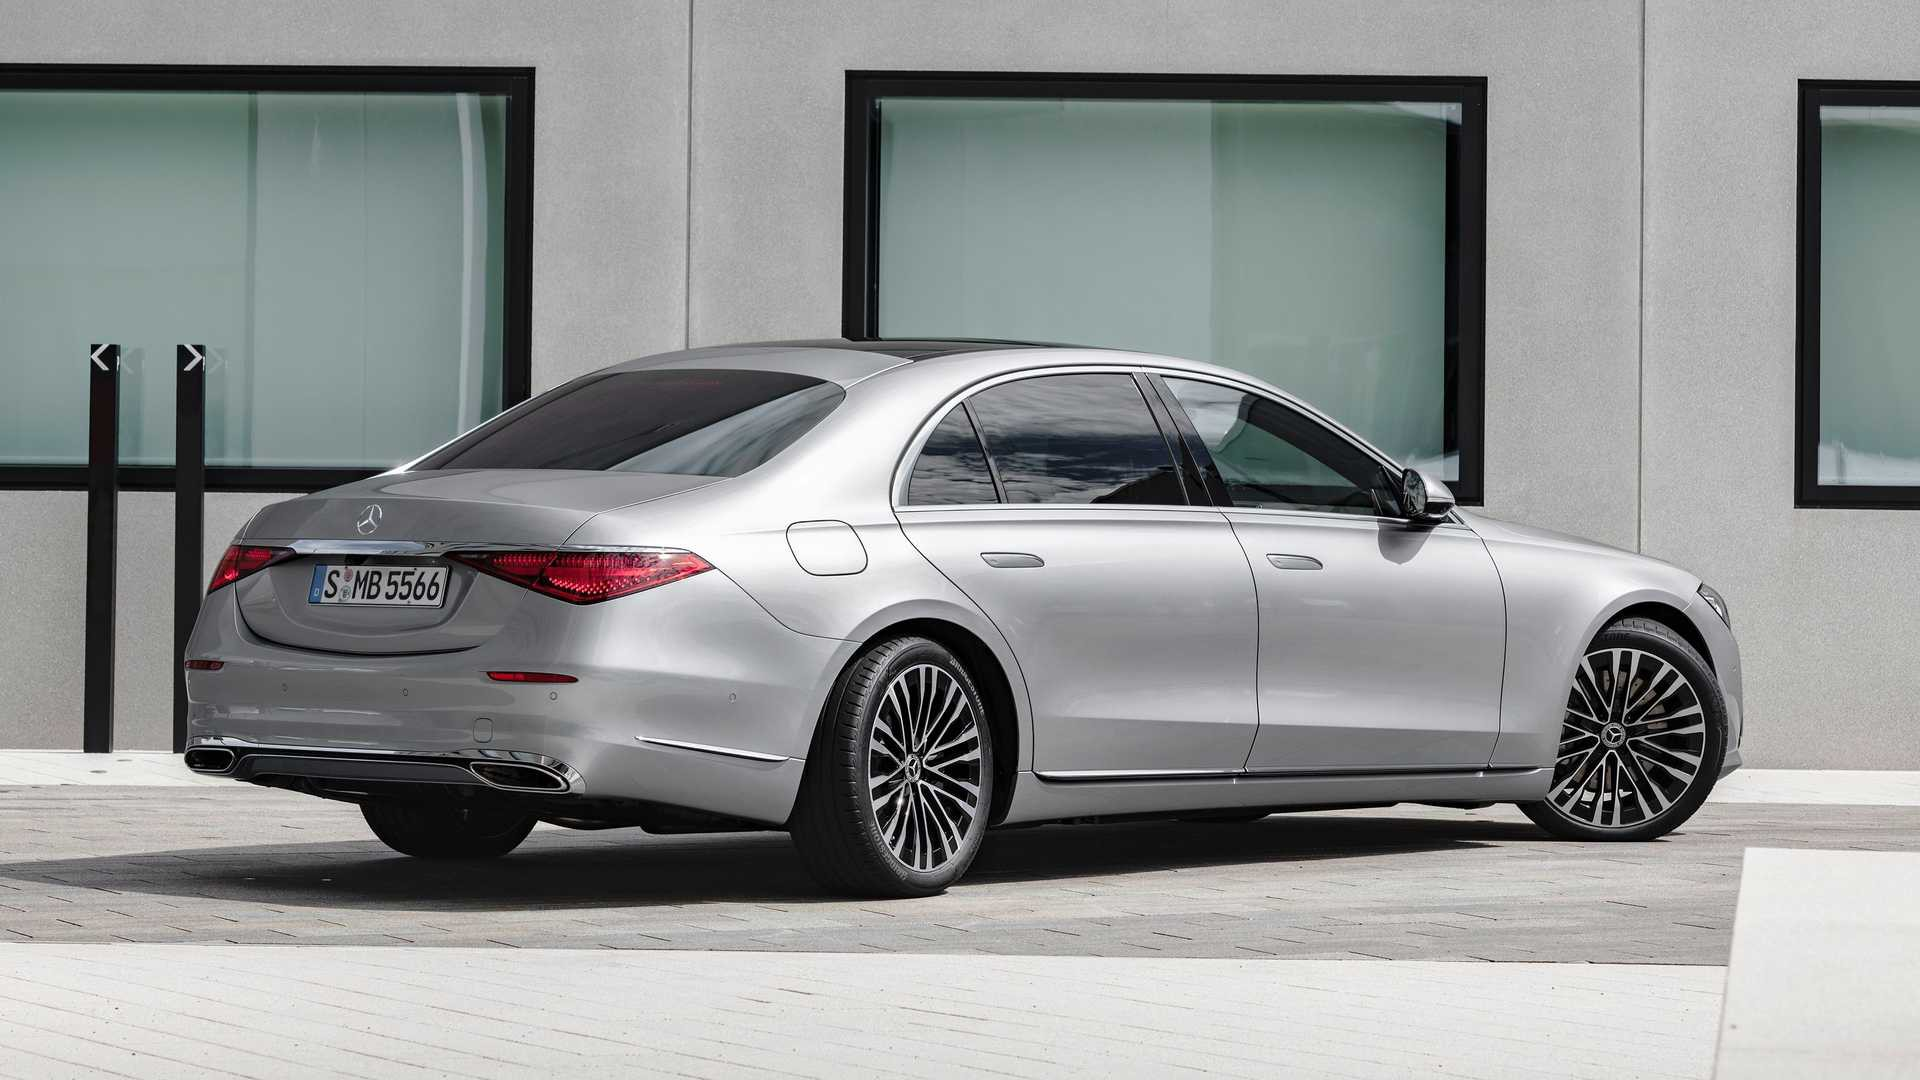 2021 mercedes benz s class sedan exterior (2)